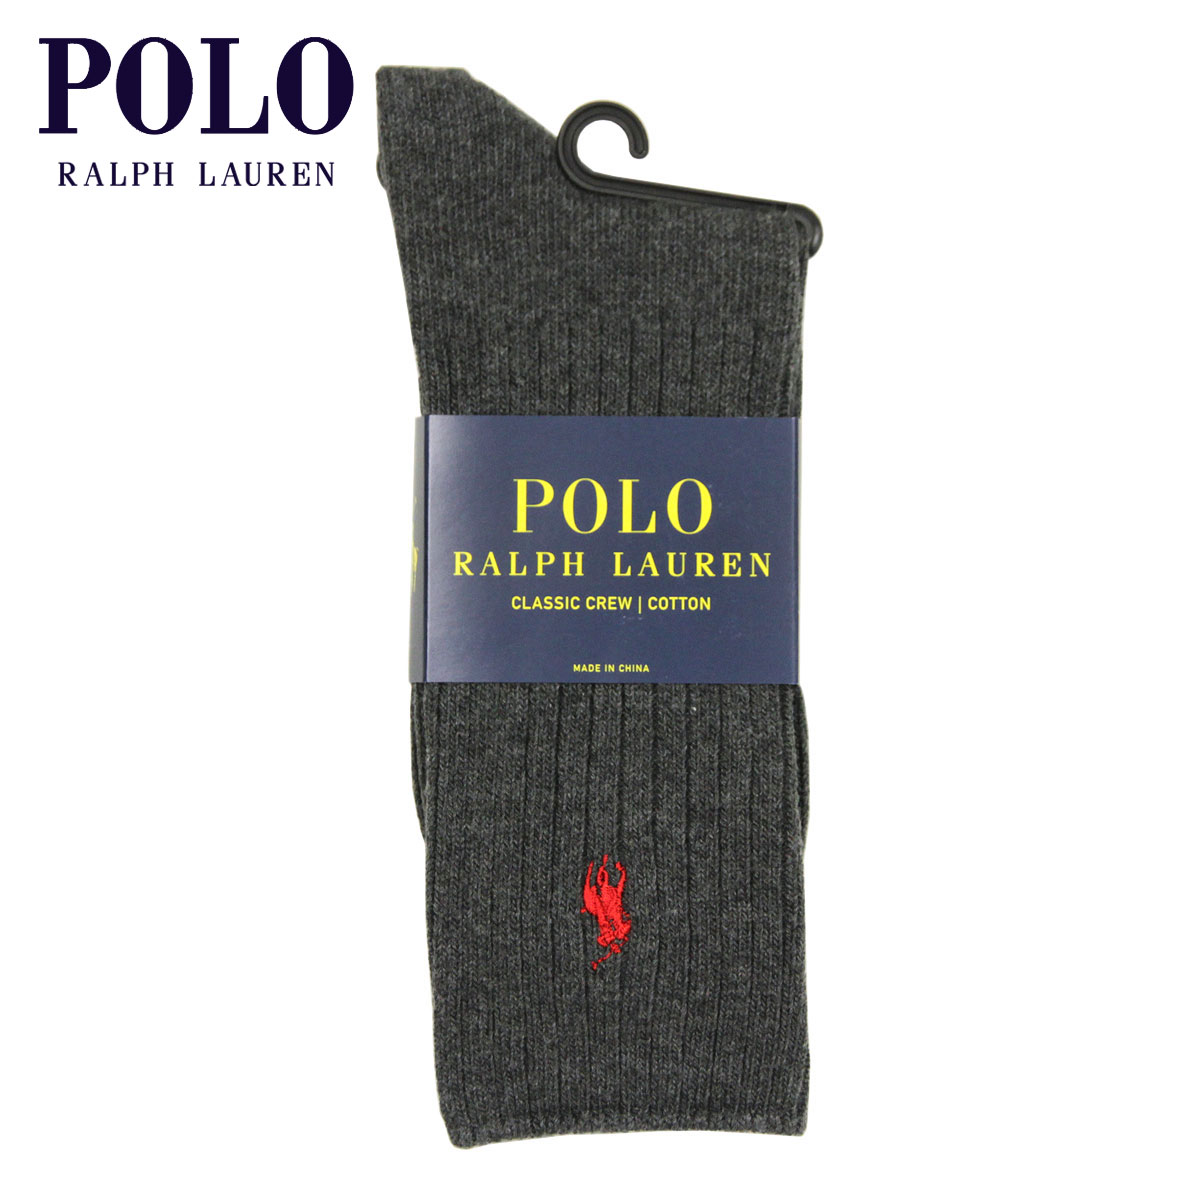 ポロ ラルフローレン POLO RALPH LAUREN 正規品 ソックス COTTON RIB SINGLE SOCK CHAR.H 011 - CHARCOAL HEATHER A05B B1C C3D D1E E02F SSS